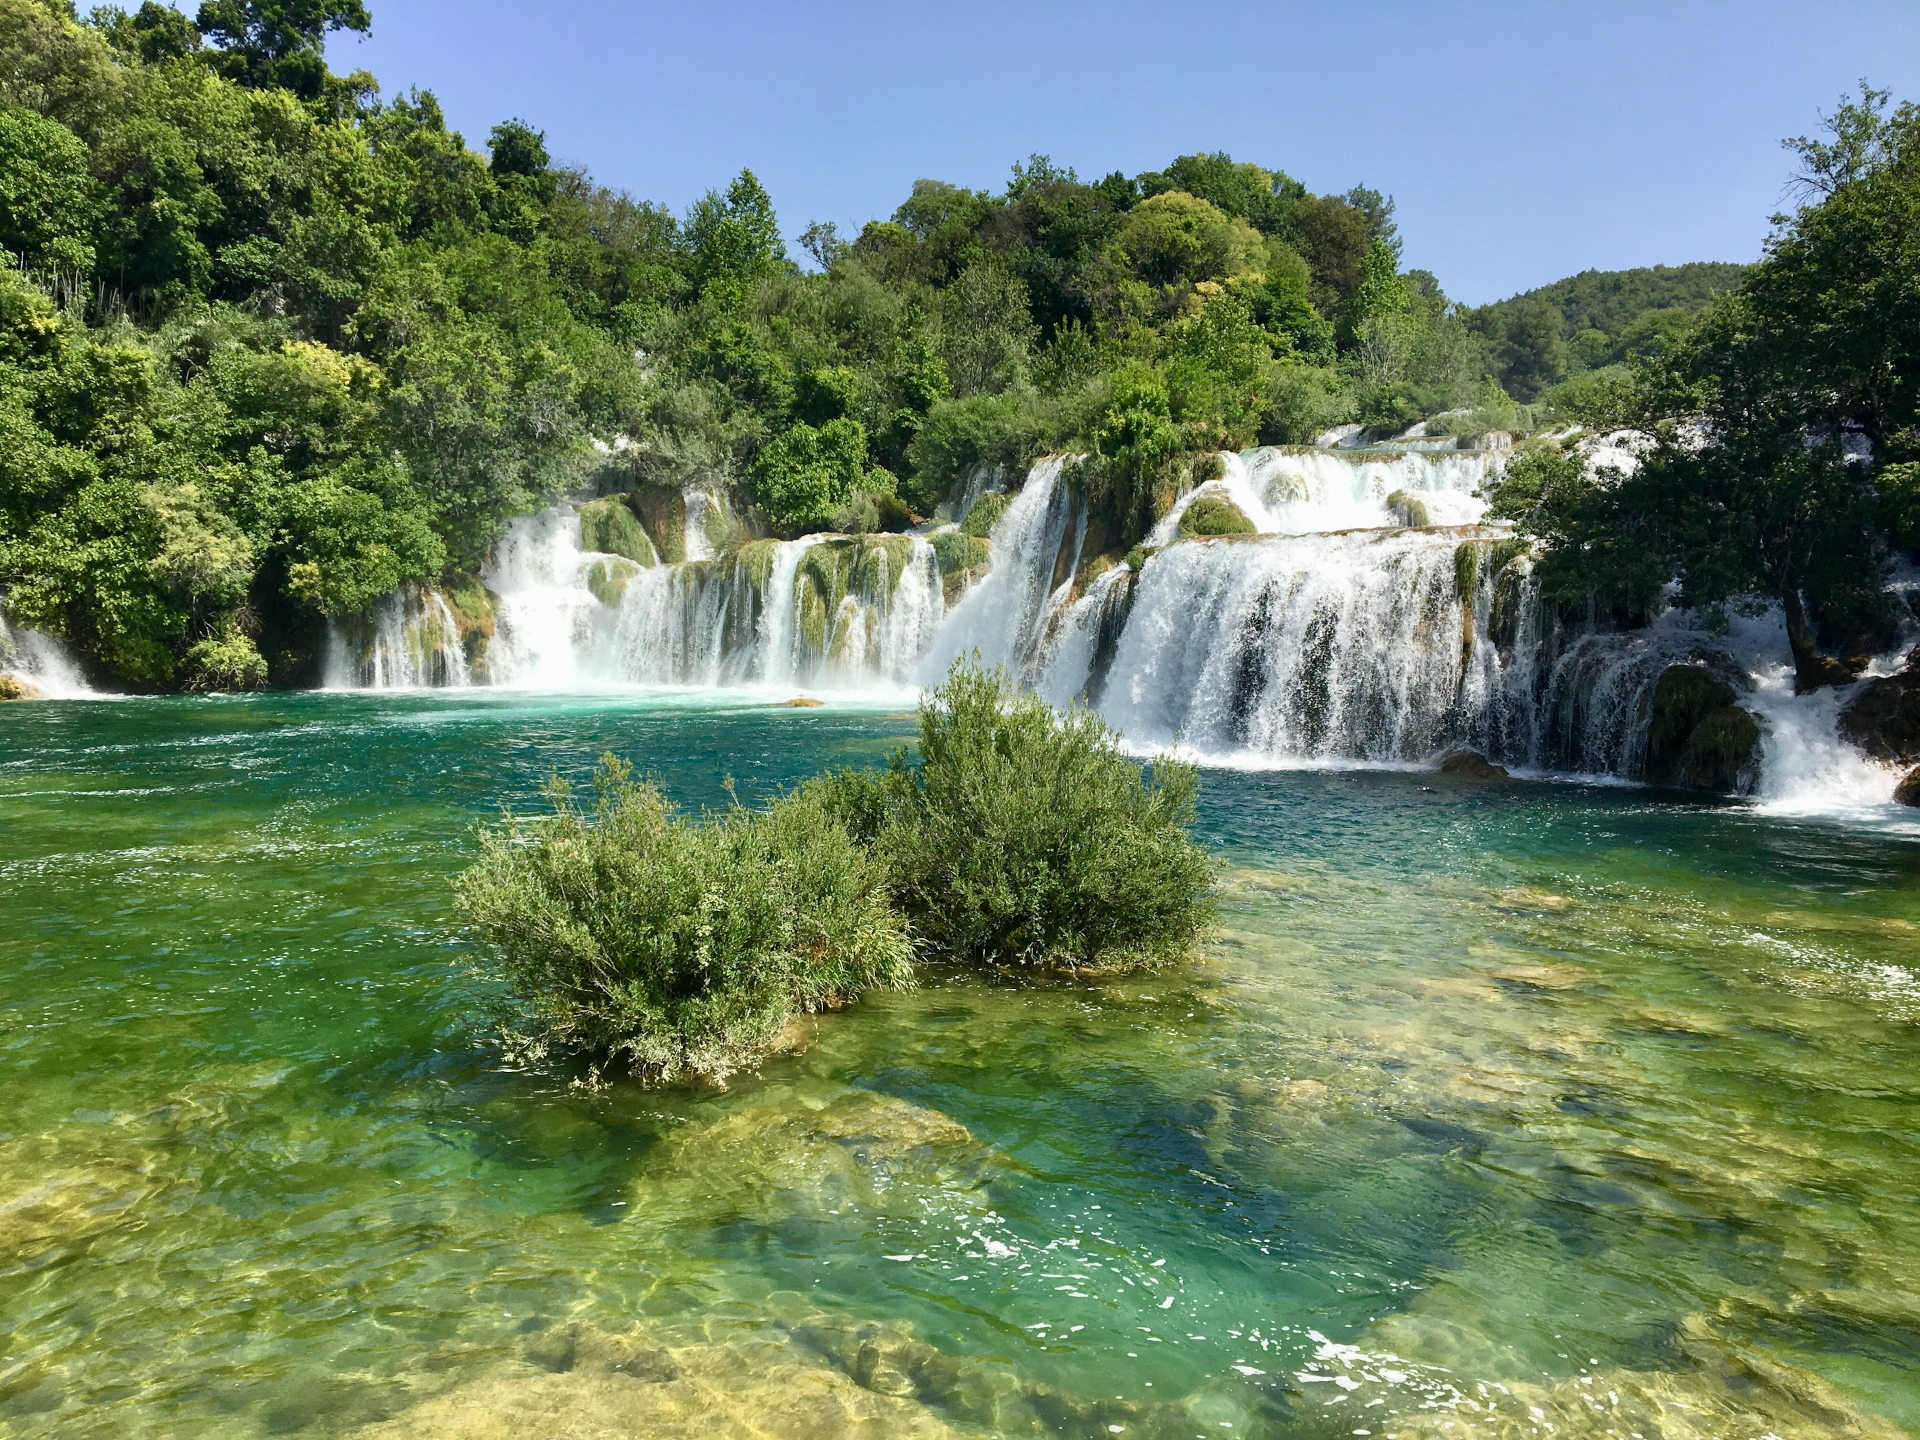 Nationalni park Krka